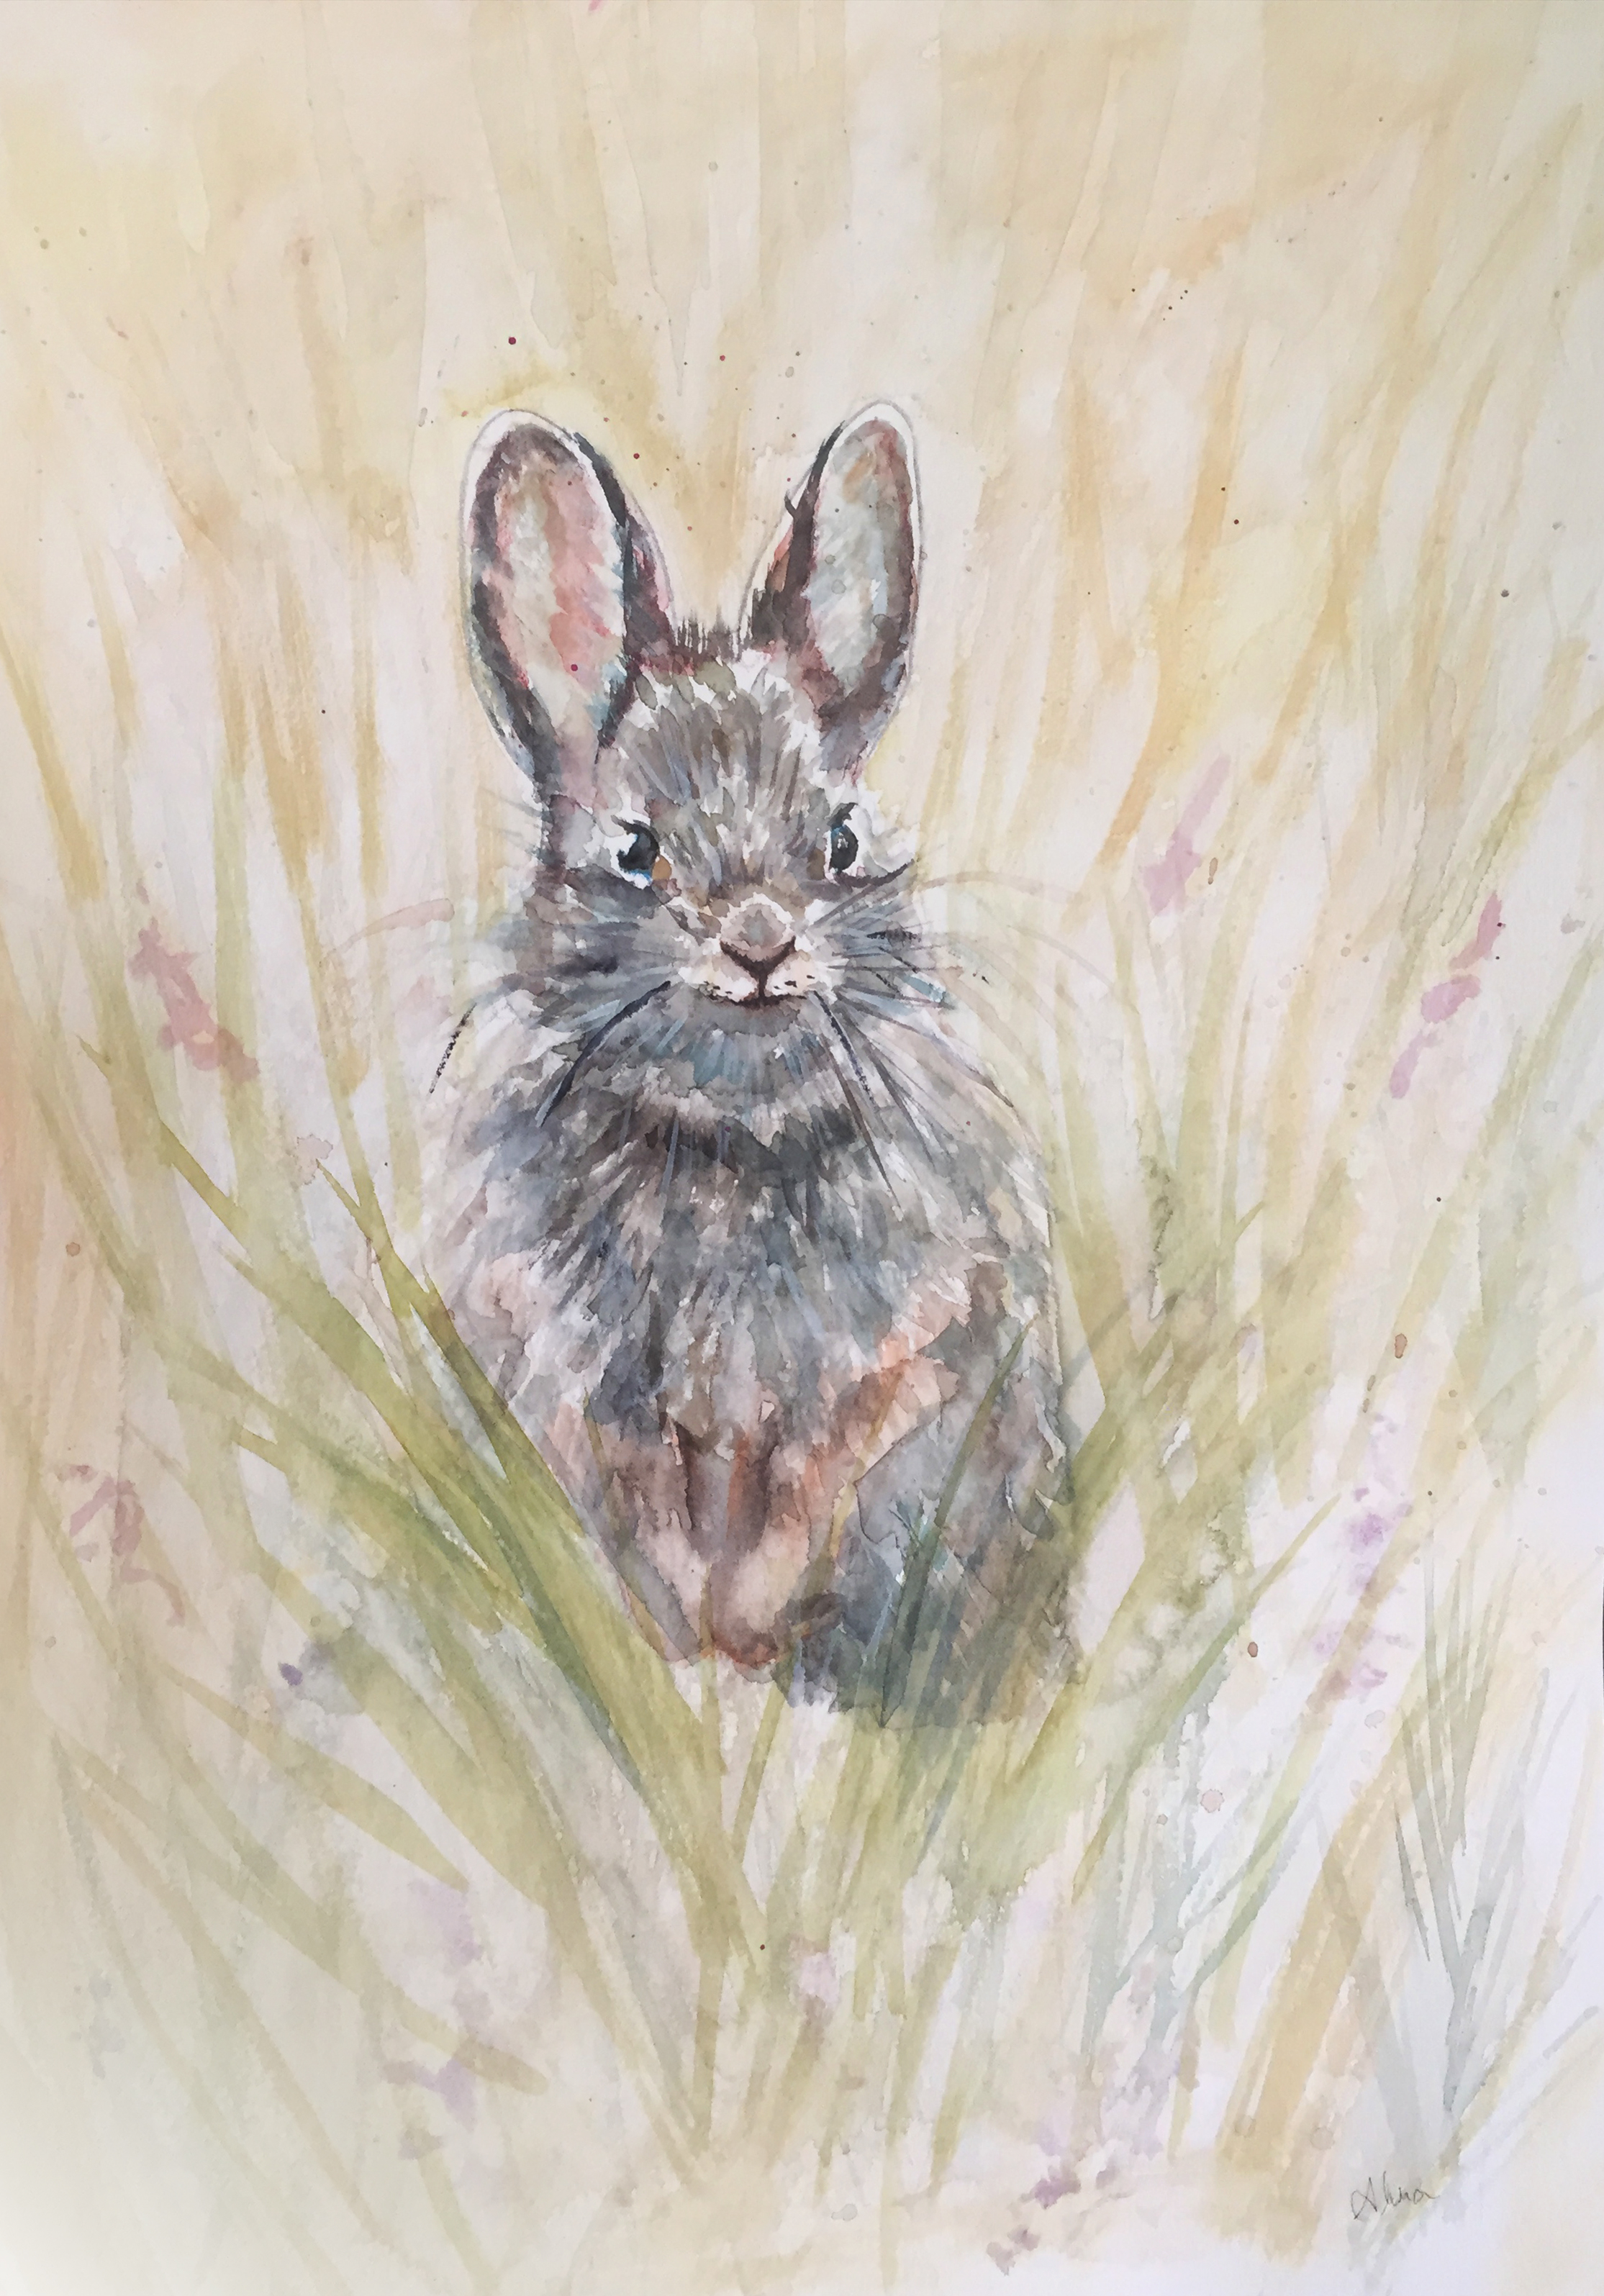 RABBIT (Pygmy Rabbit)